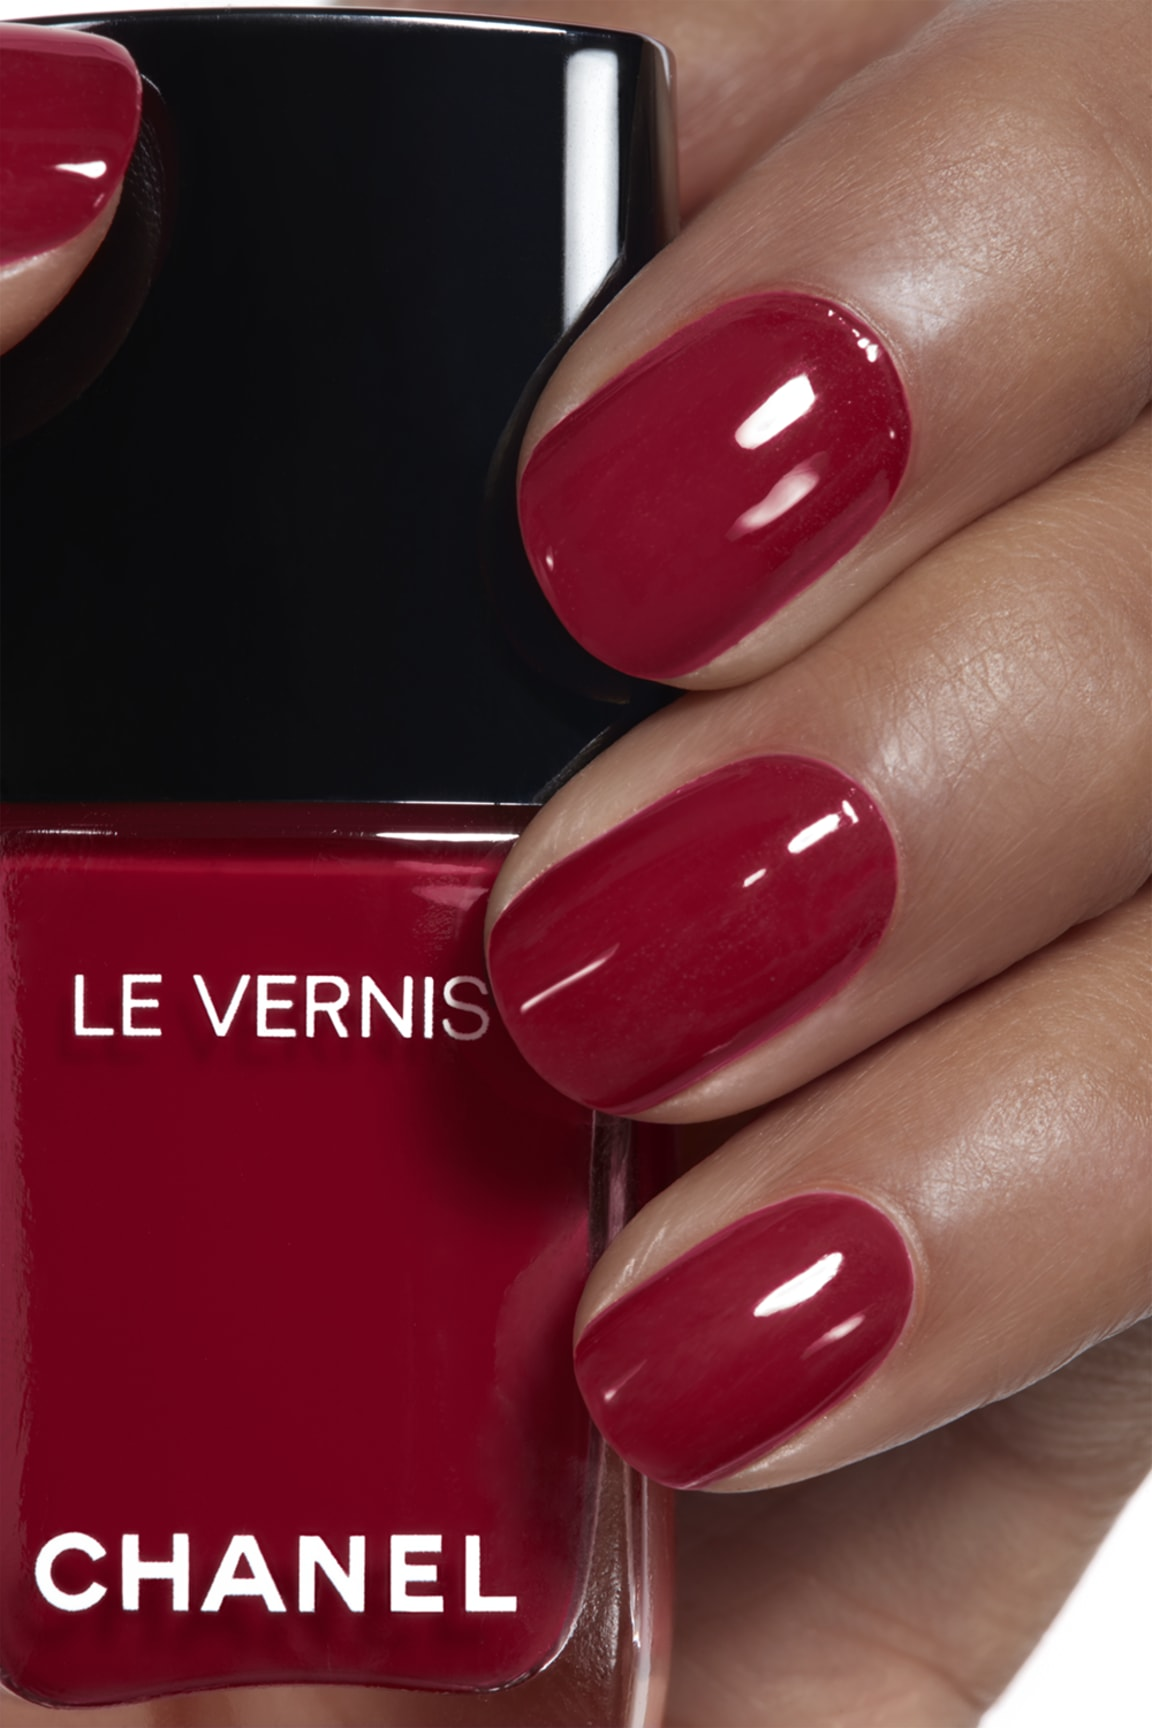 Application makeup visual 1 - LE VERNIS 08 - PIRATE